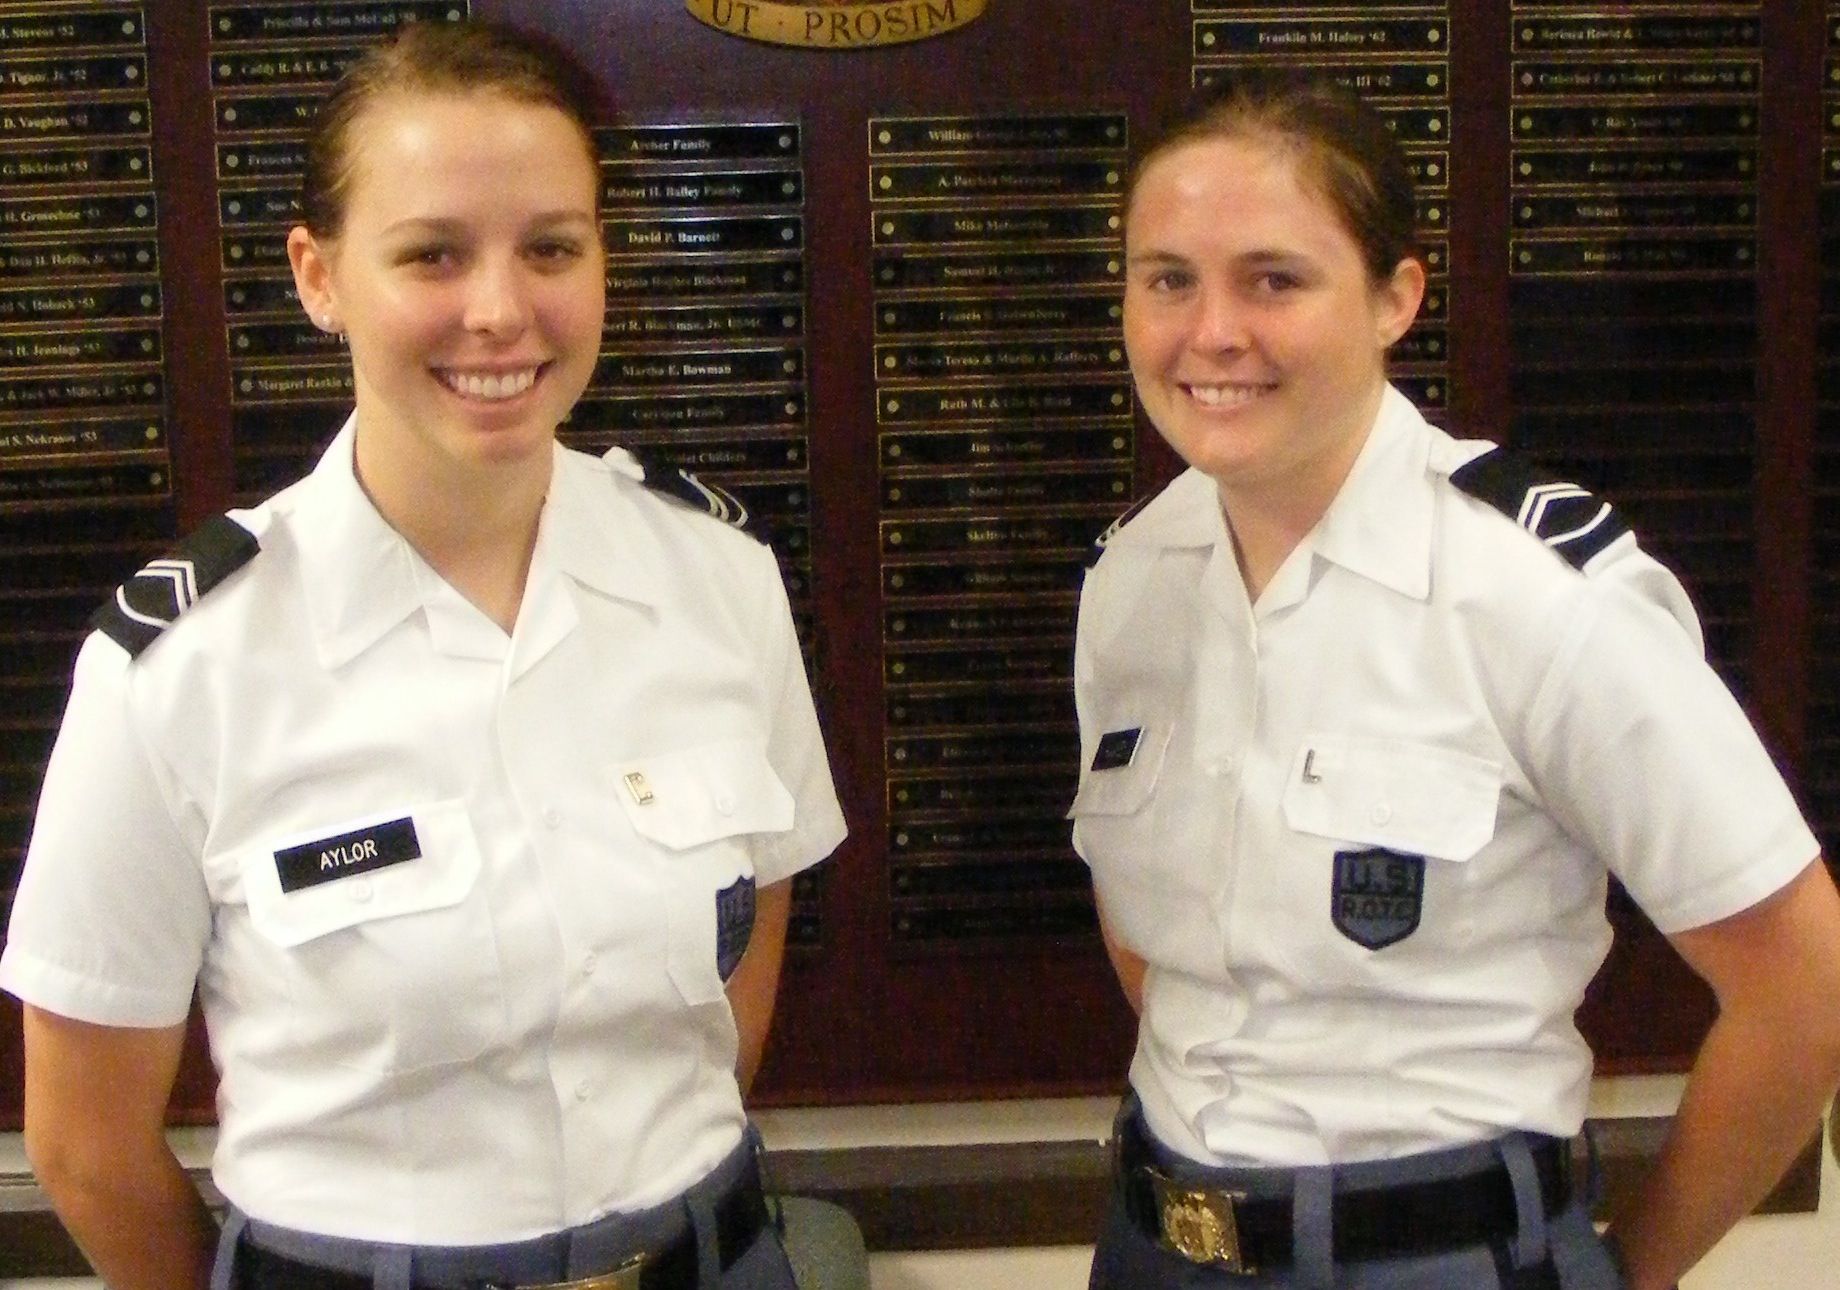 Cadets Michelle Aylor and Kirsten Hughes in the Brodie Hall lounge